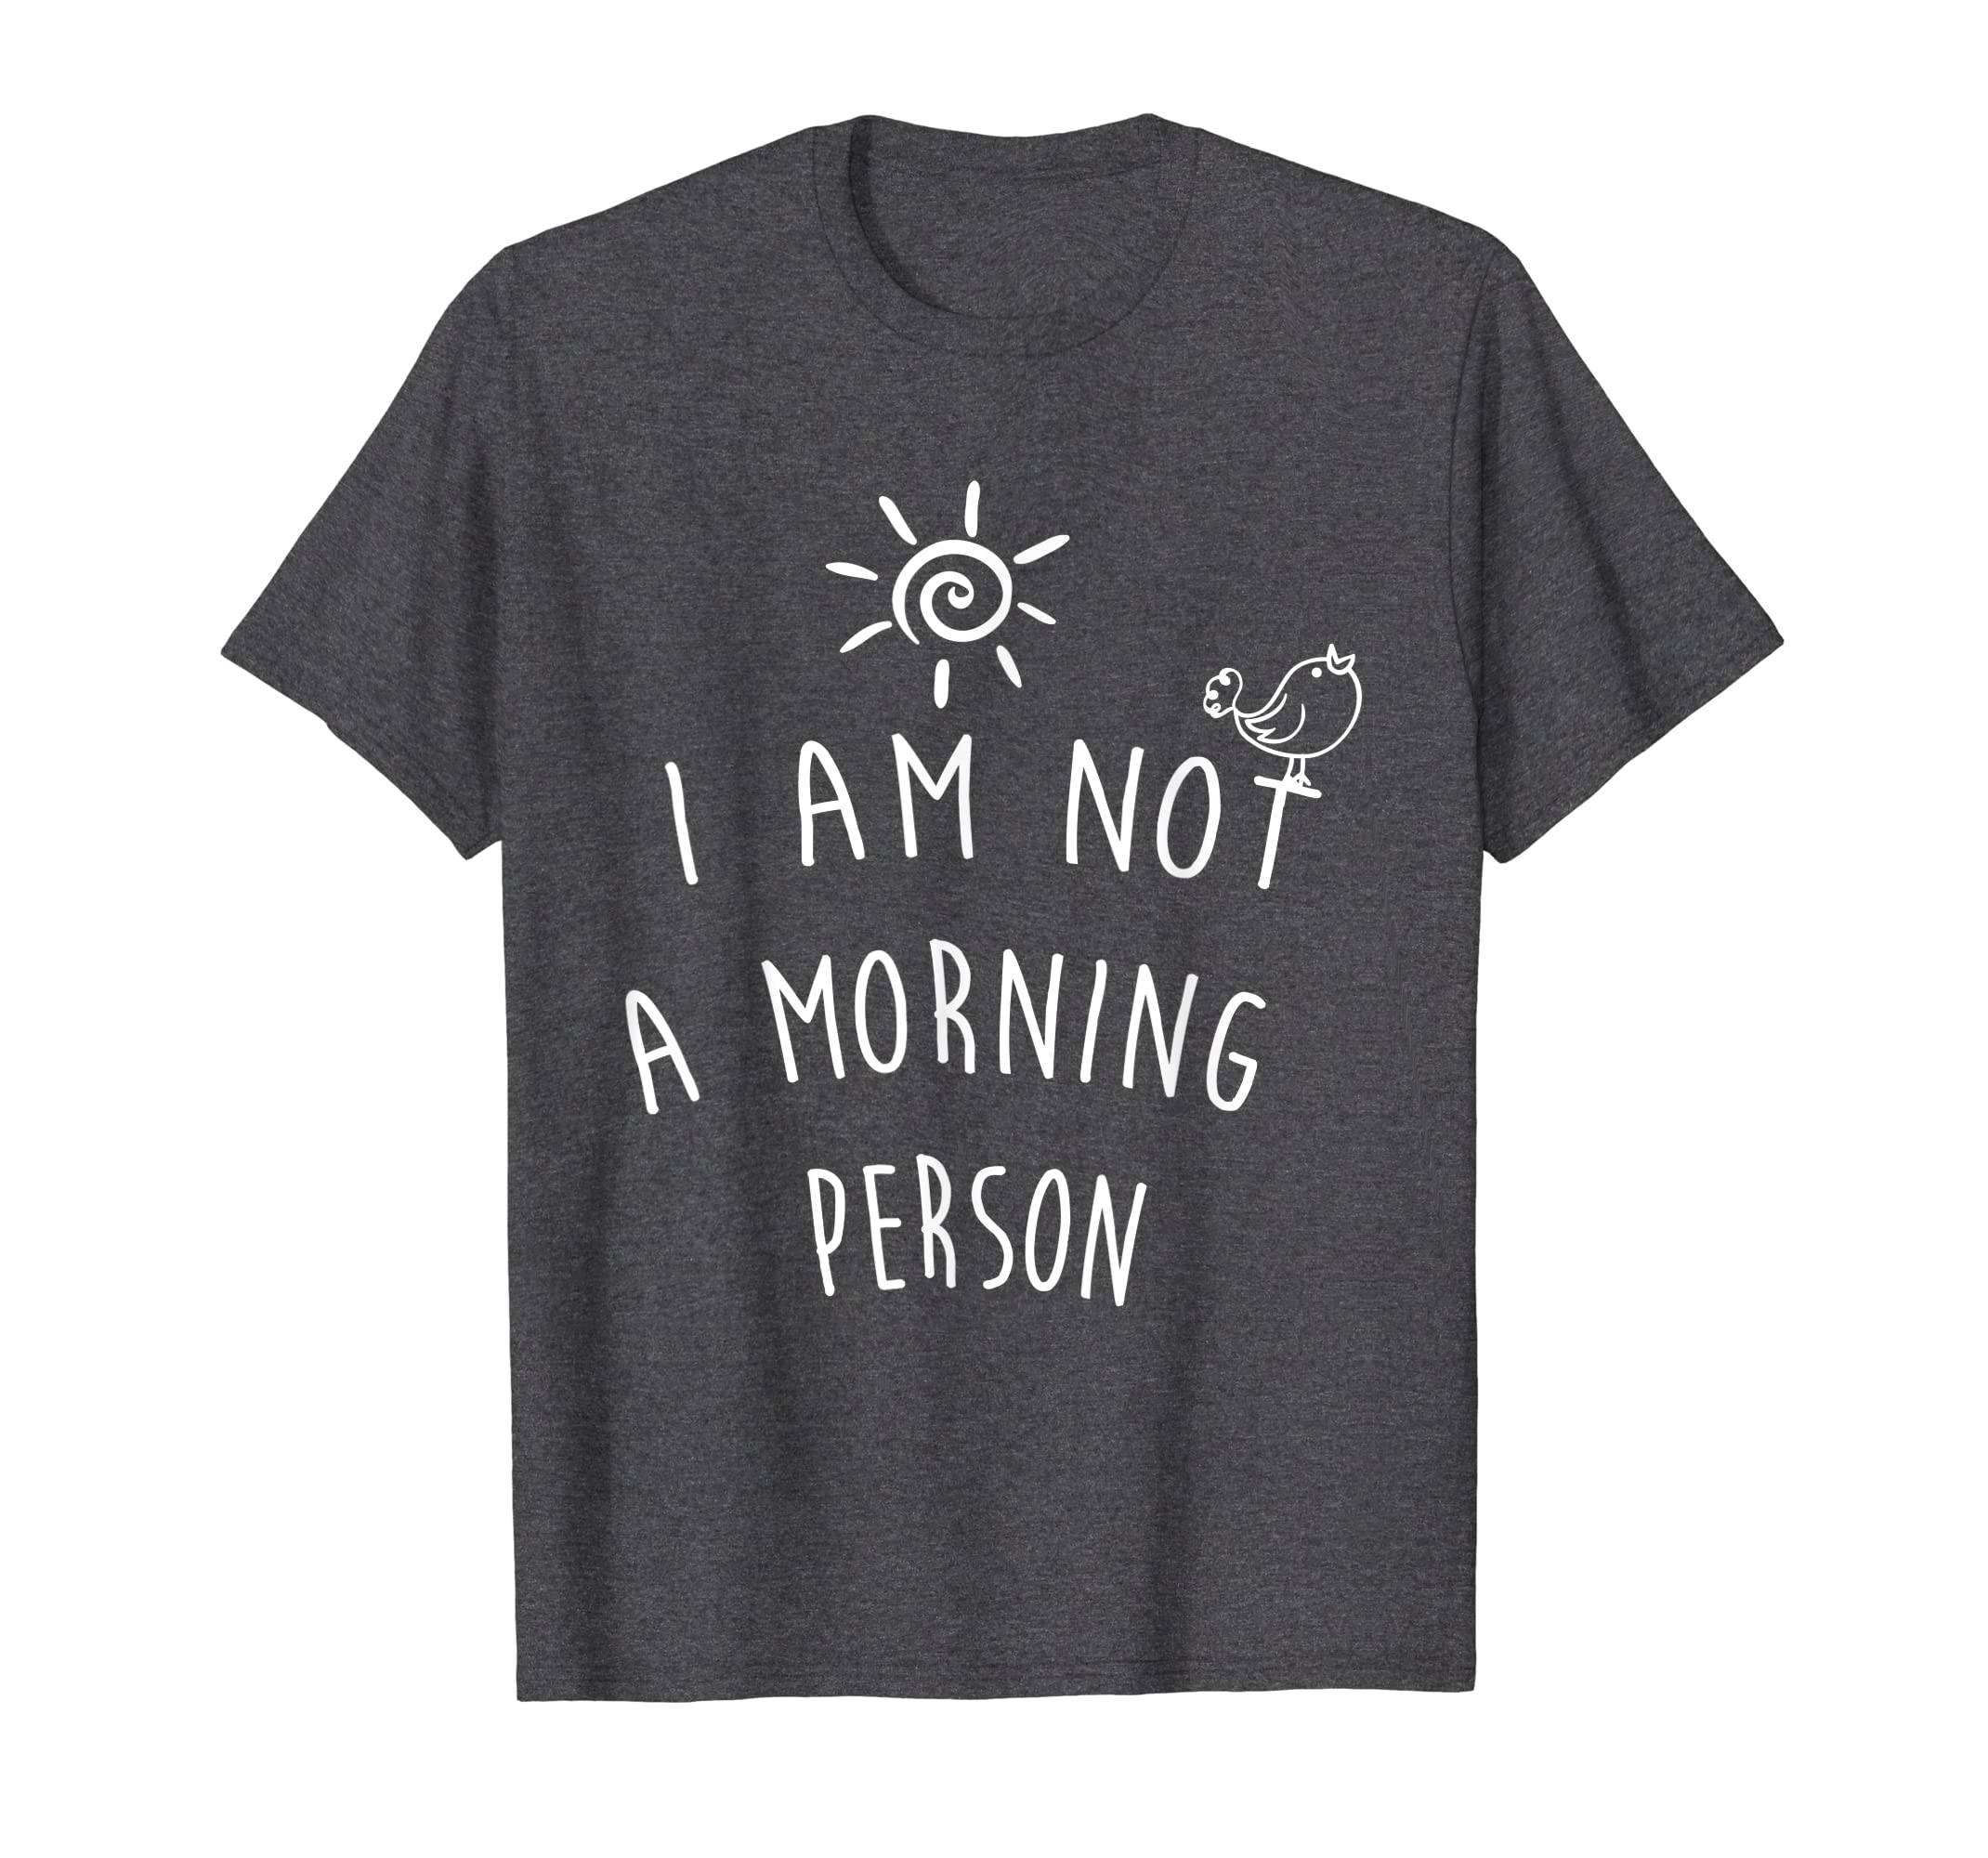 It's The Way You Feel I Am Not a Morning Person T-Shirt-Teehay